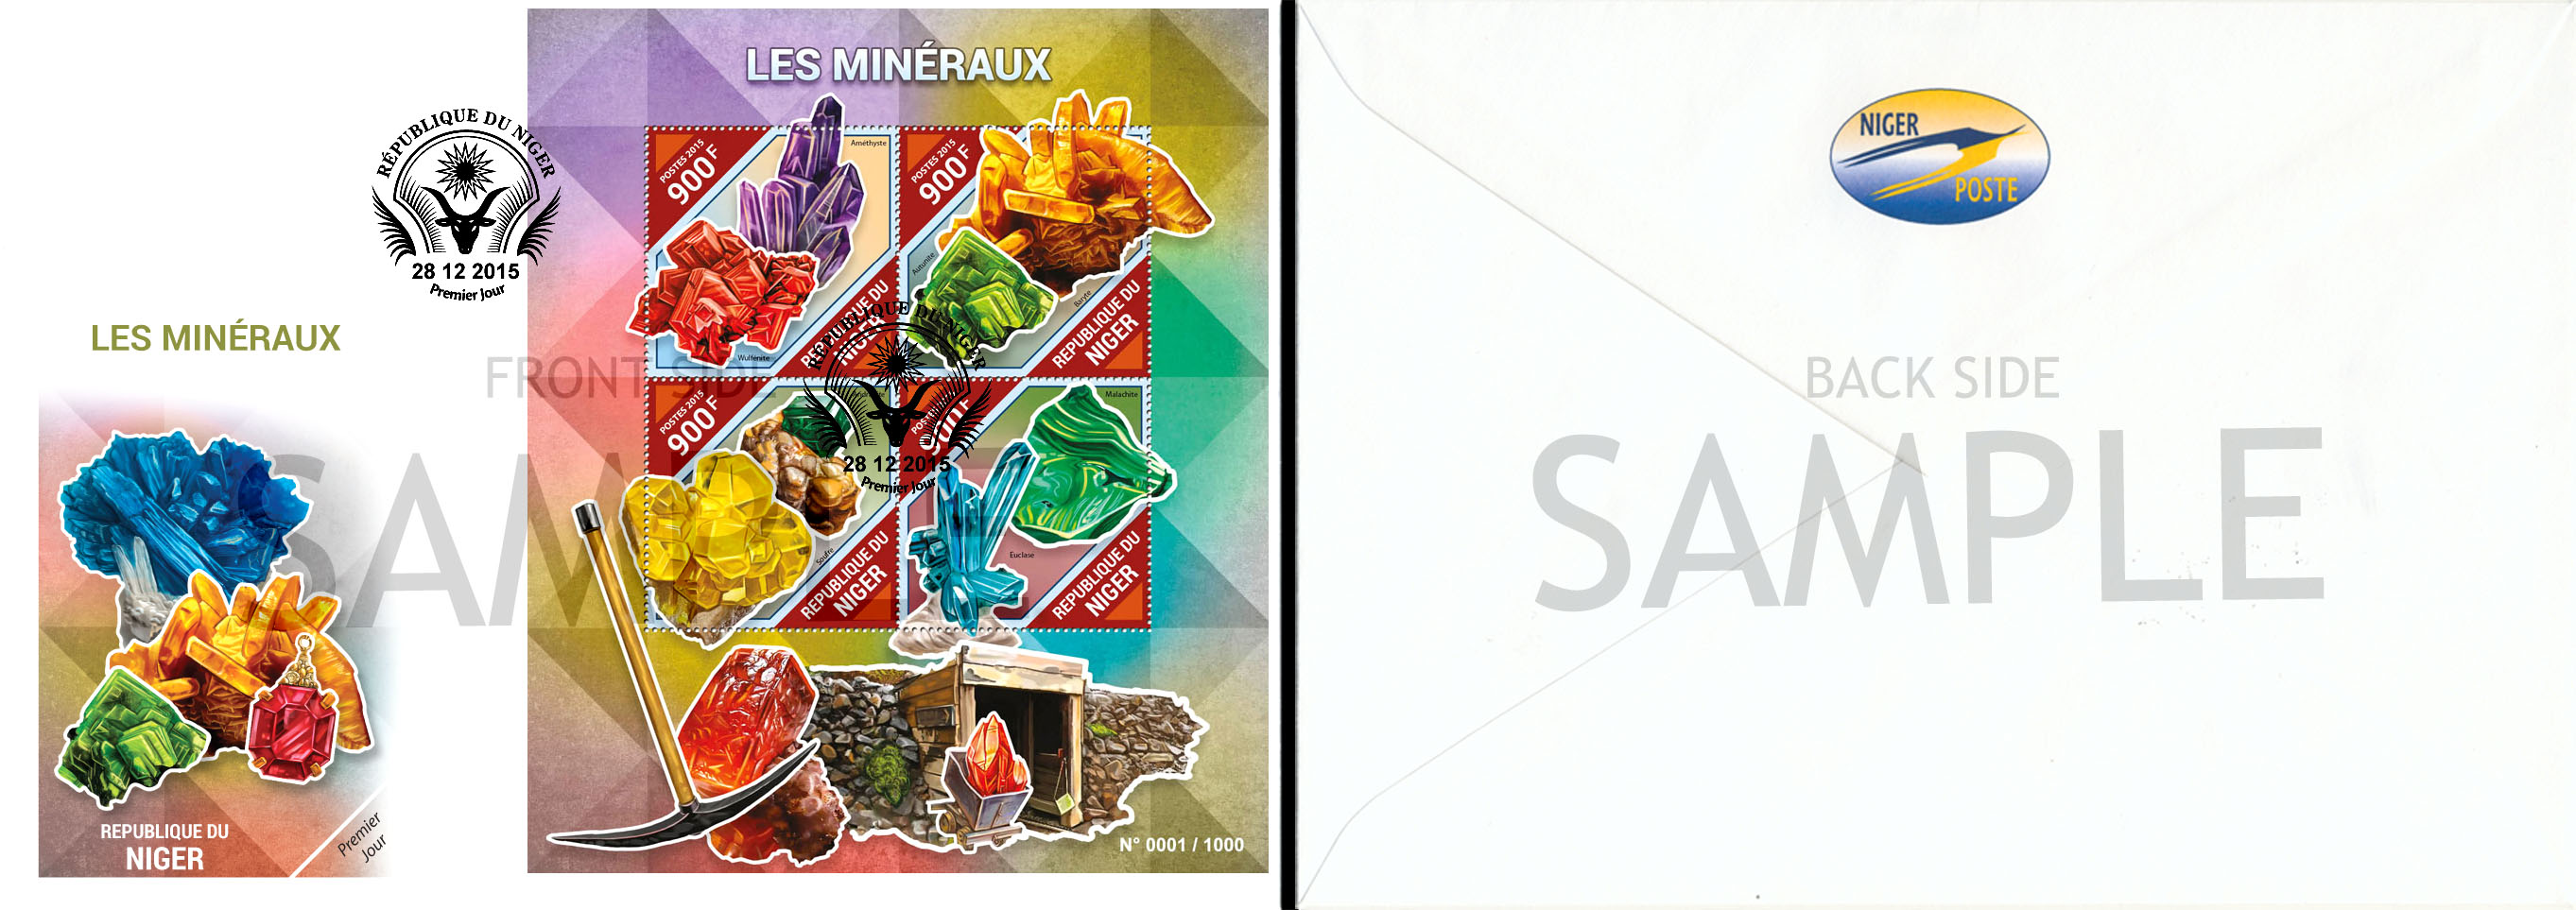 FDC Sample - Issue of Niger postage stamps